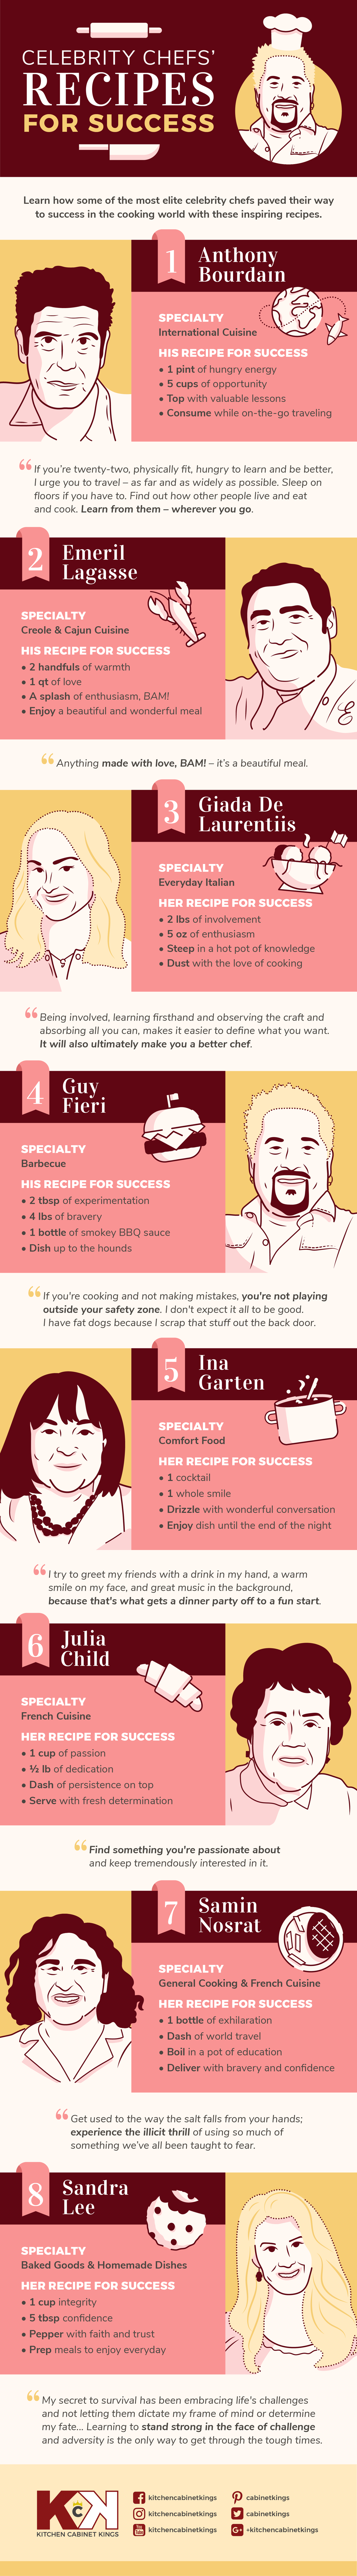 celebrity-chefs-recipes-for-success-infographic-@2x.png